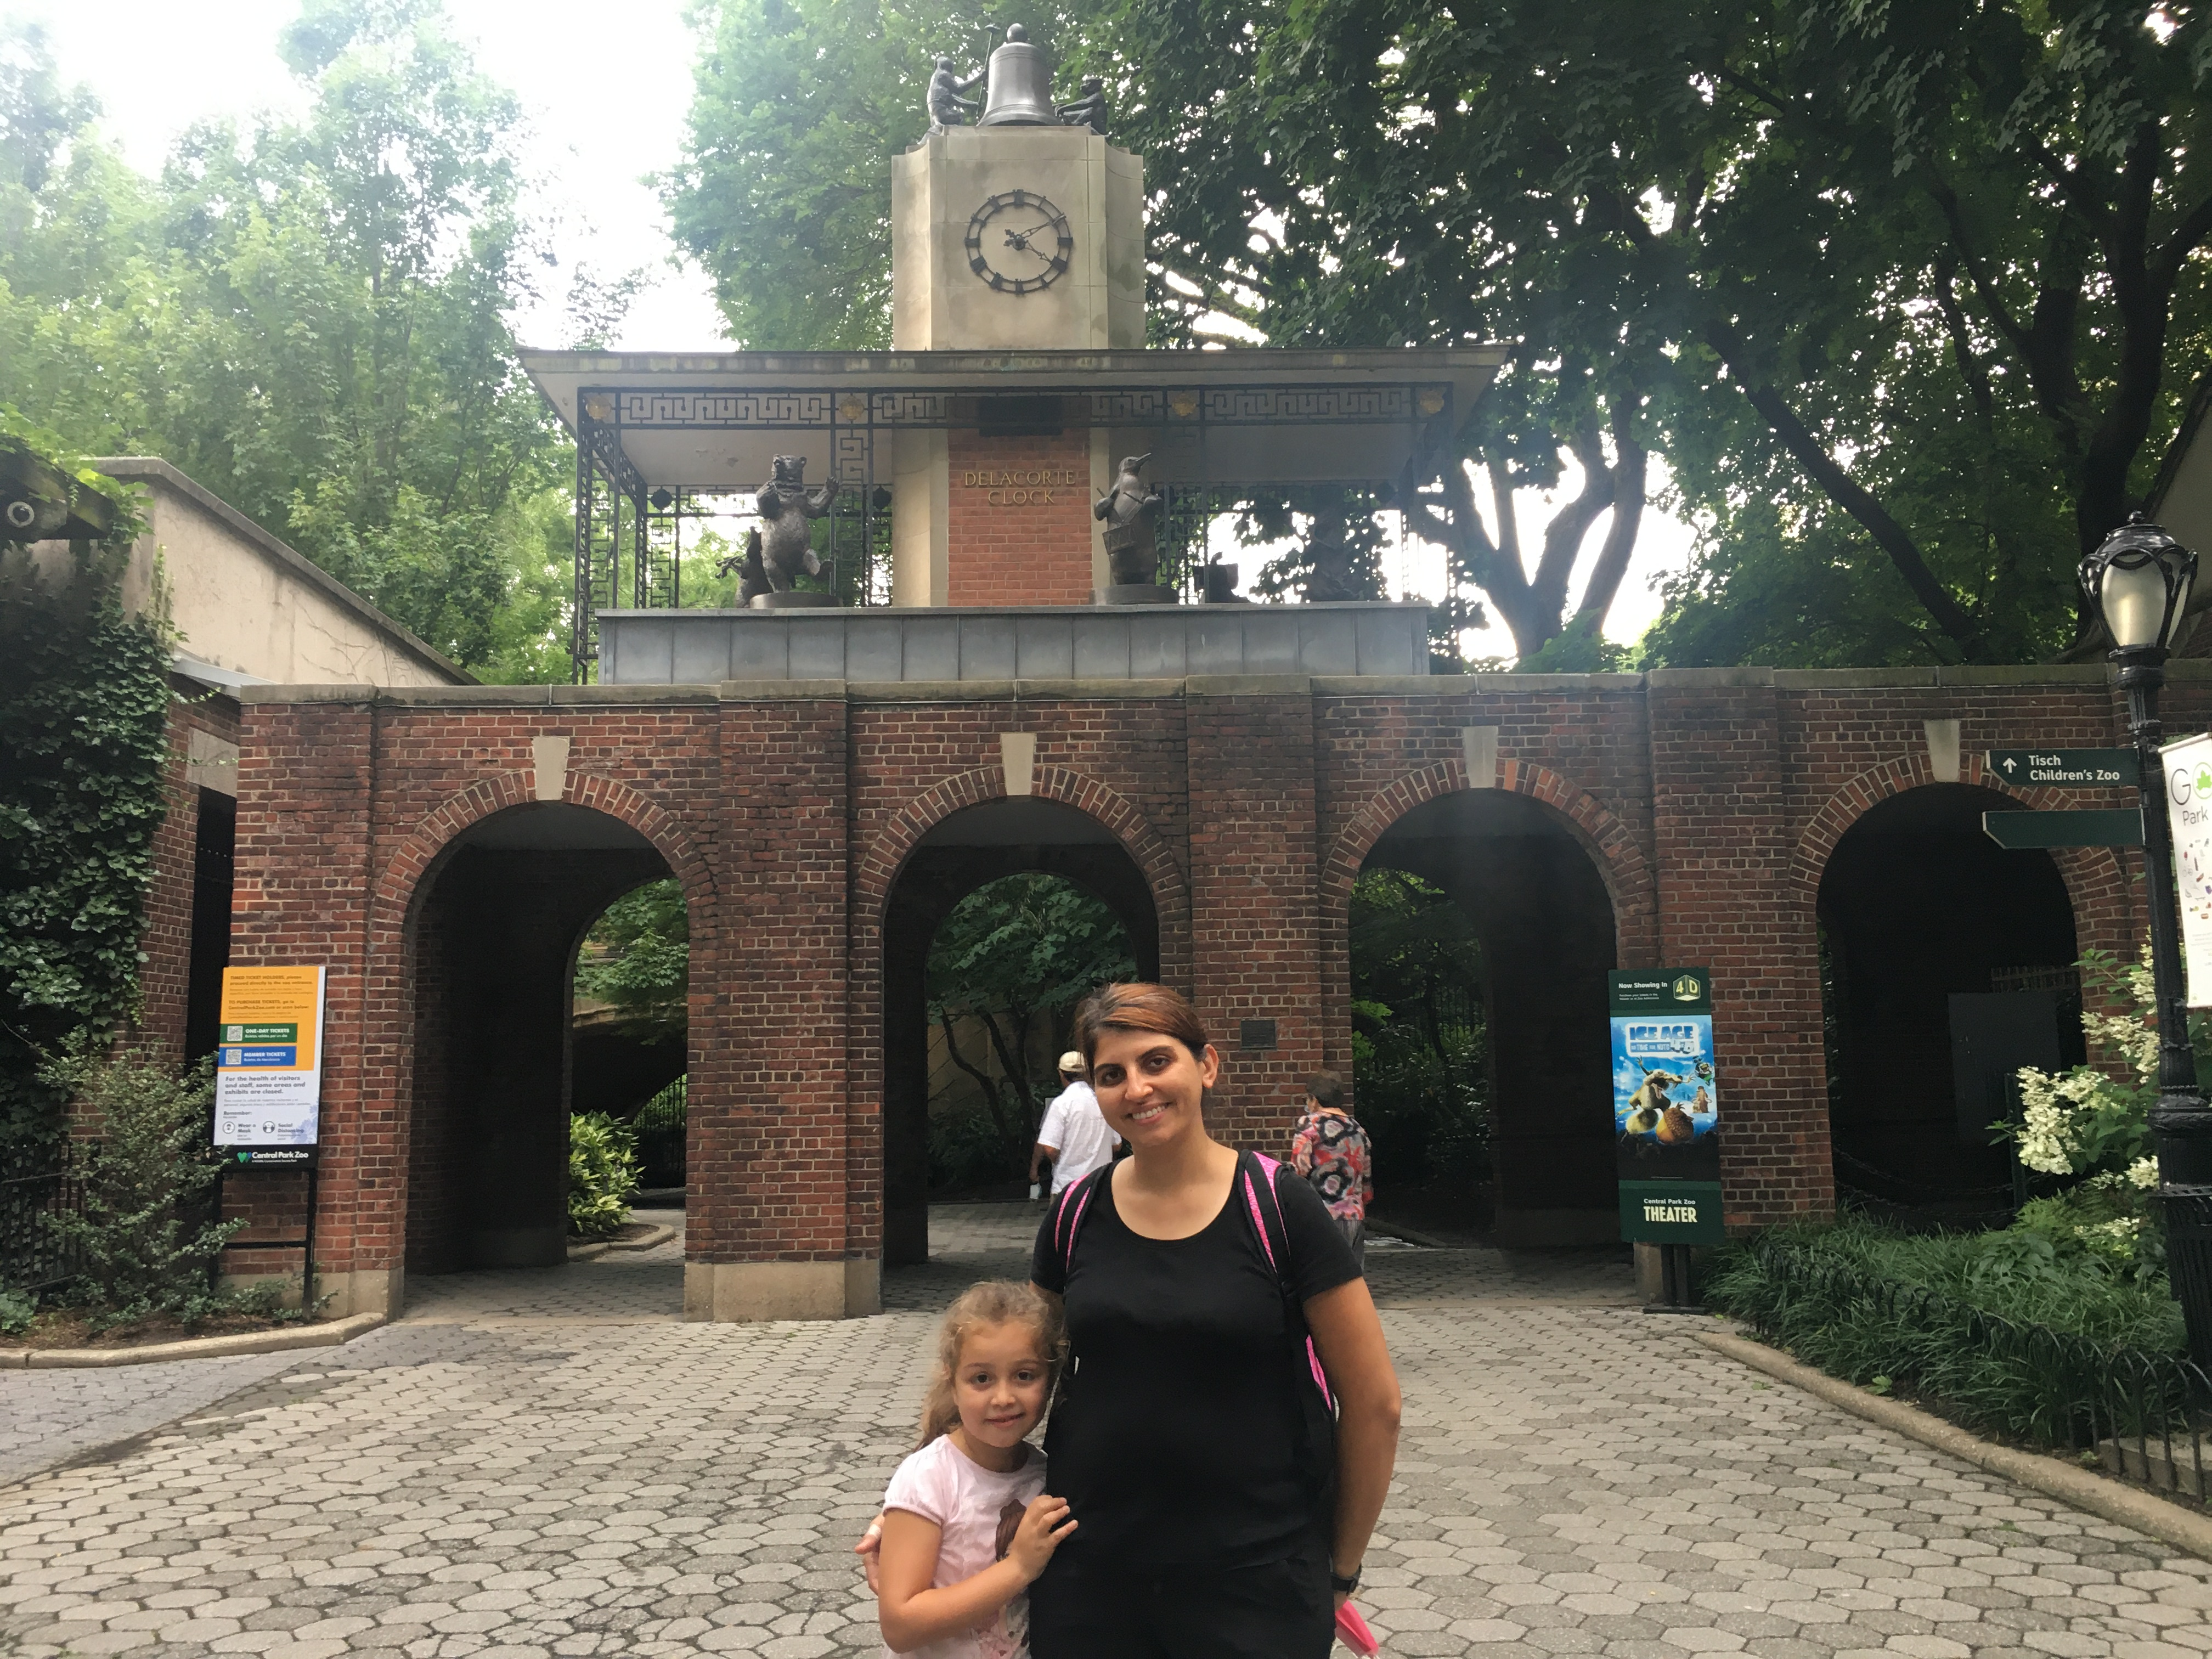 Central Park Zoo Gate